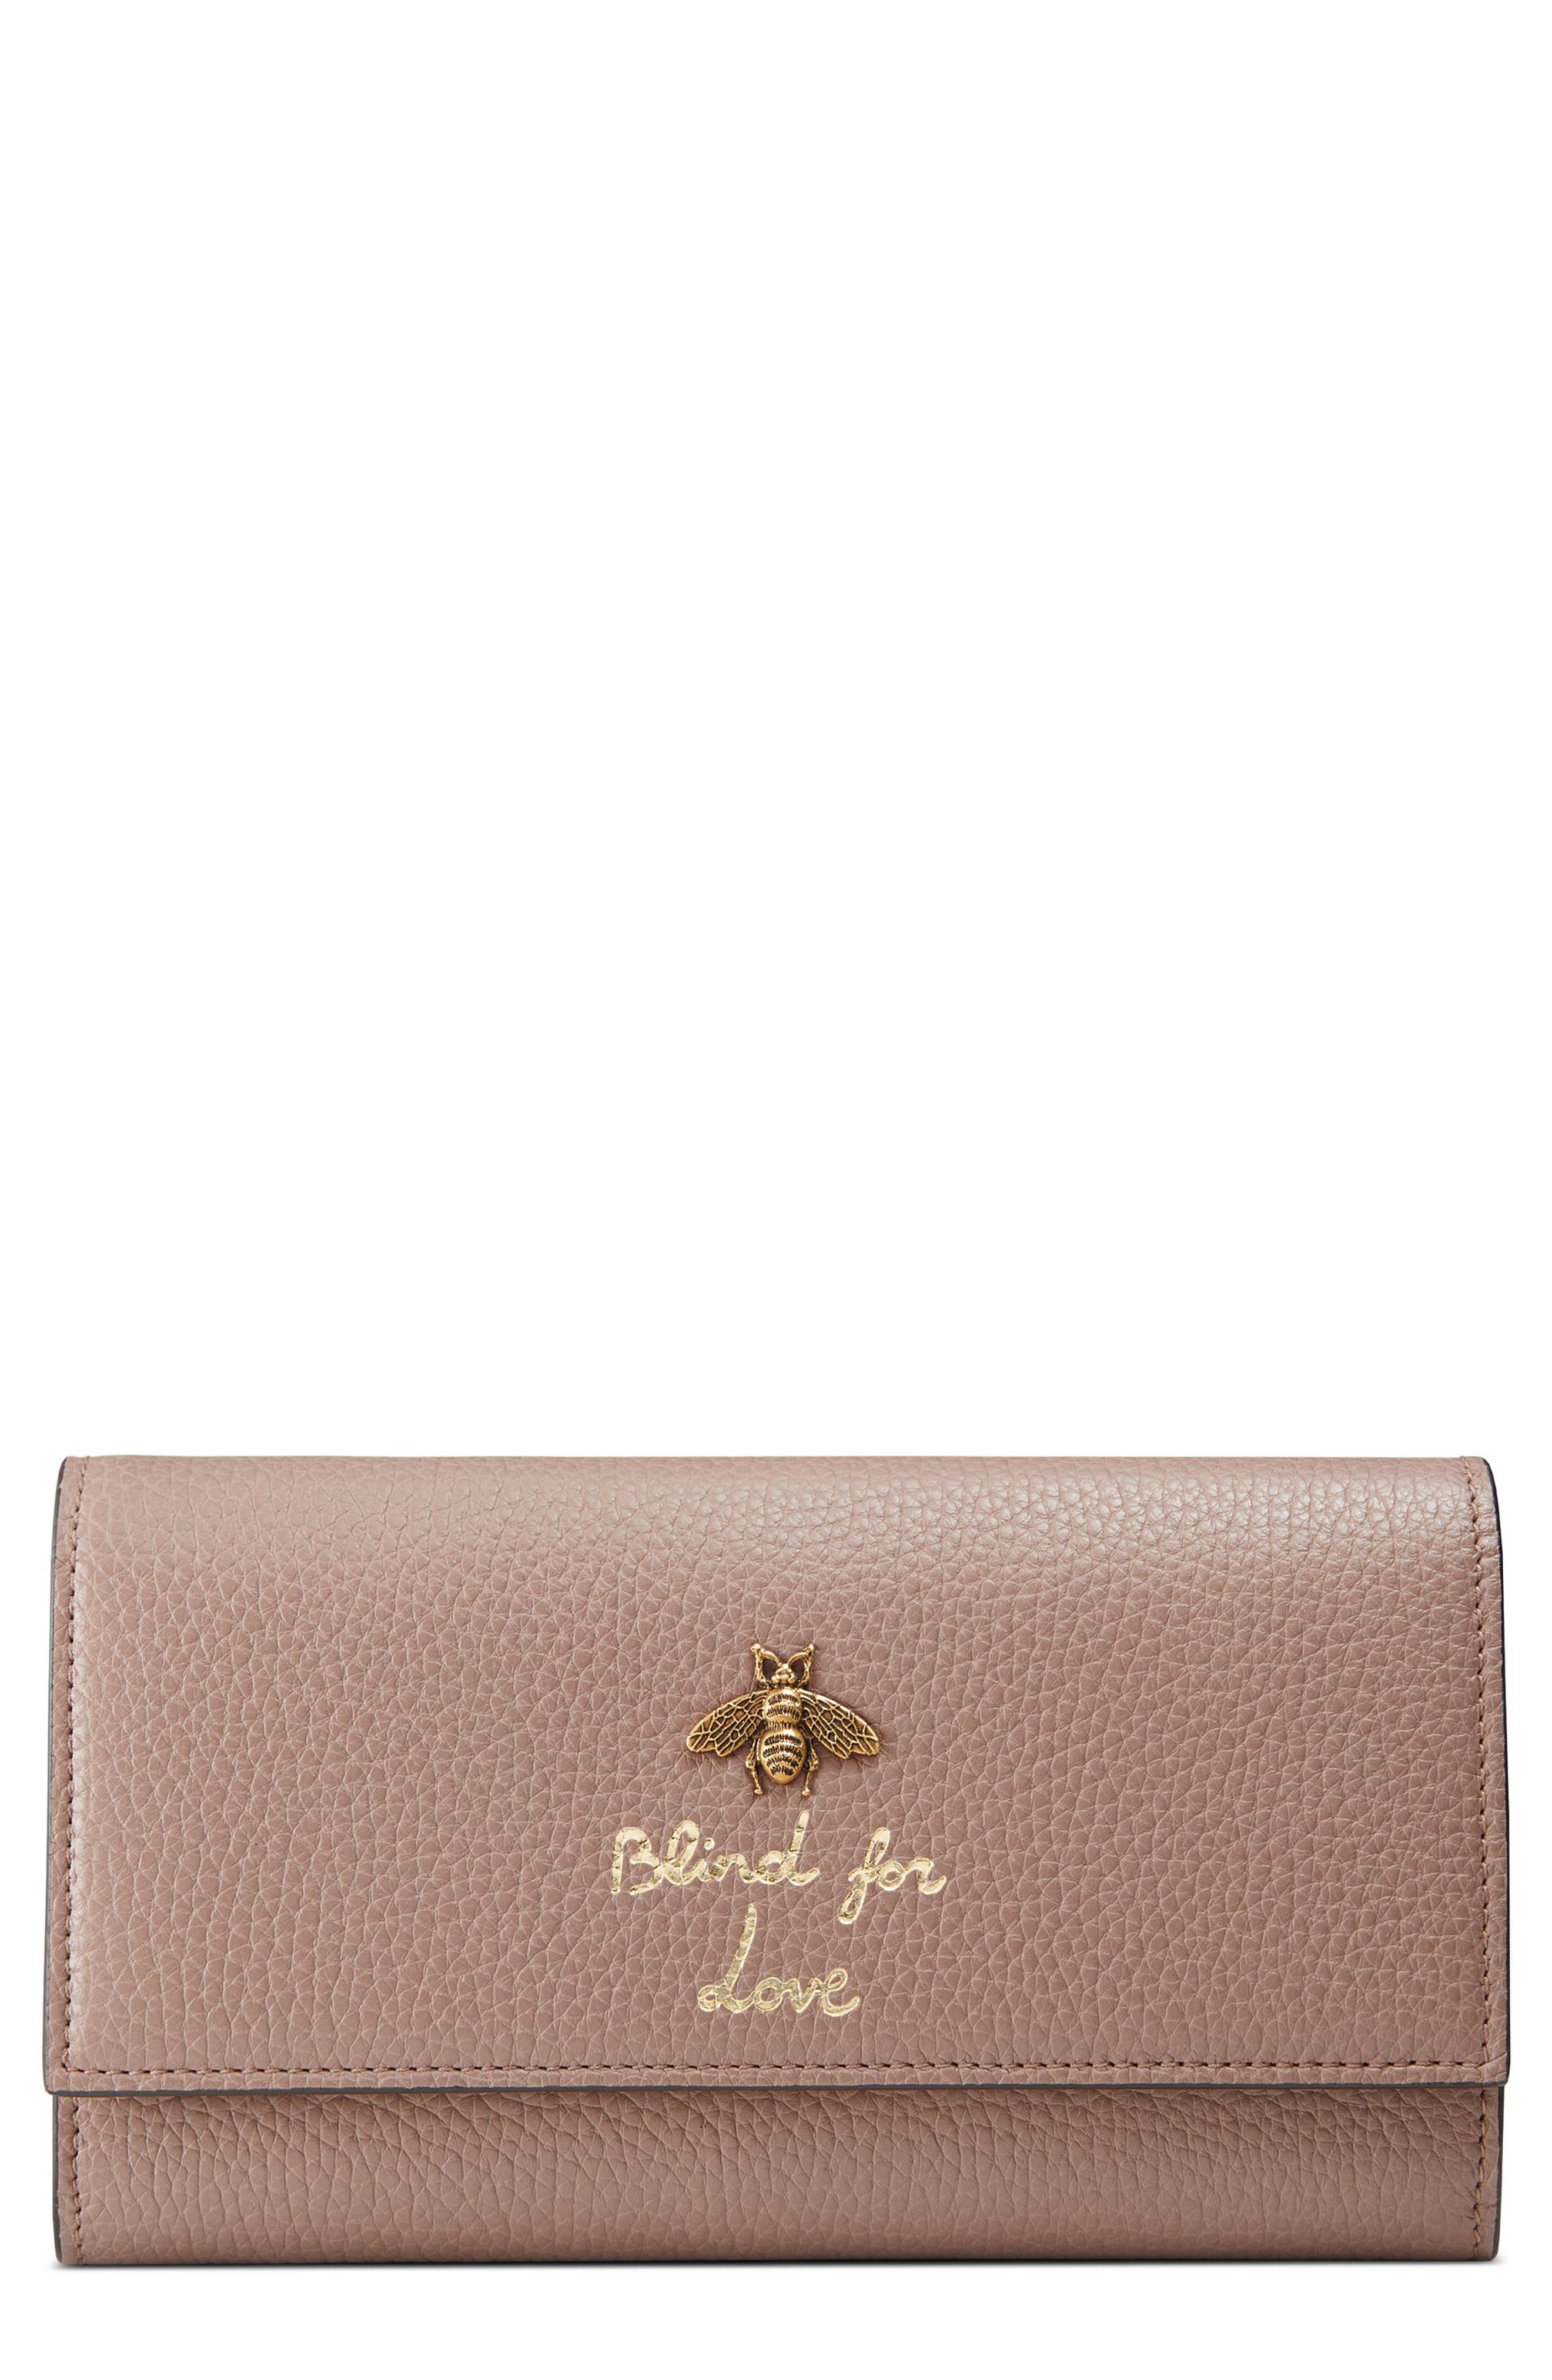 Animalier Bee Leather Continental Wallet,                             Main thumbnail 1, color,                             Porcelain Rose